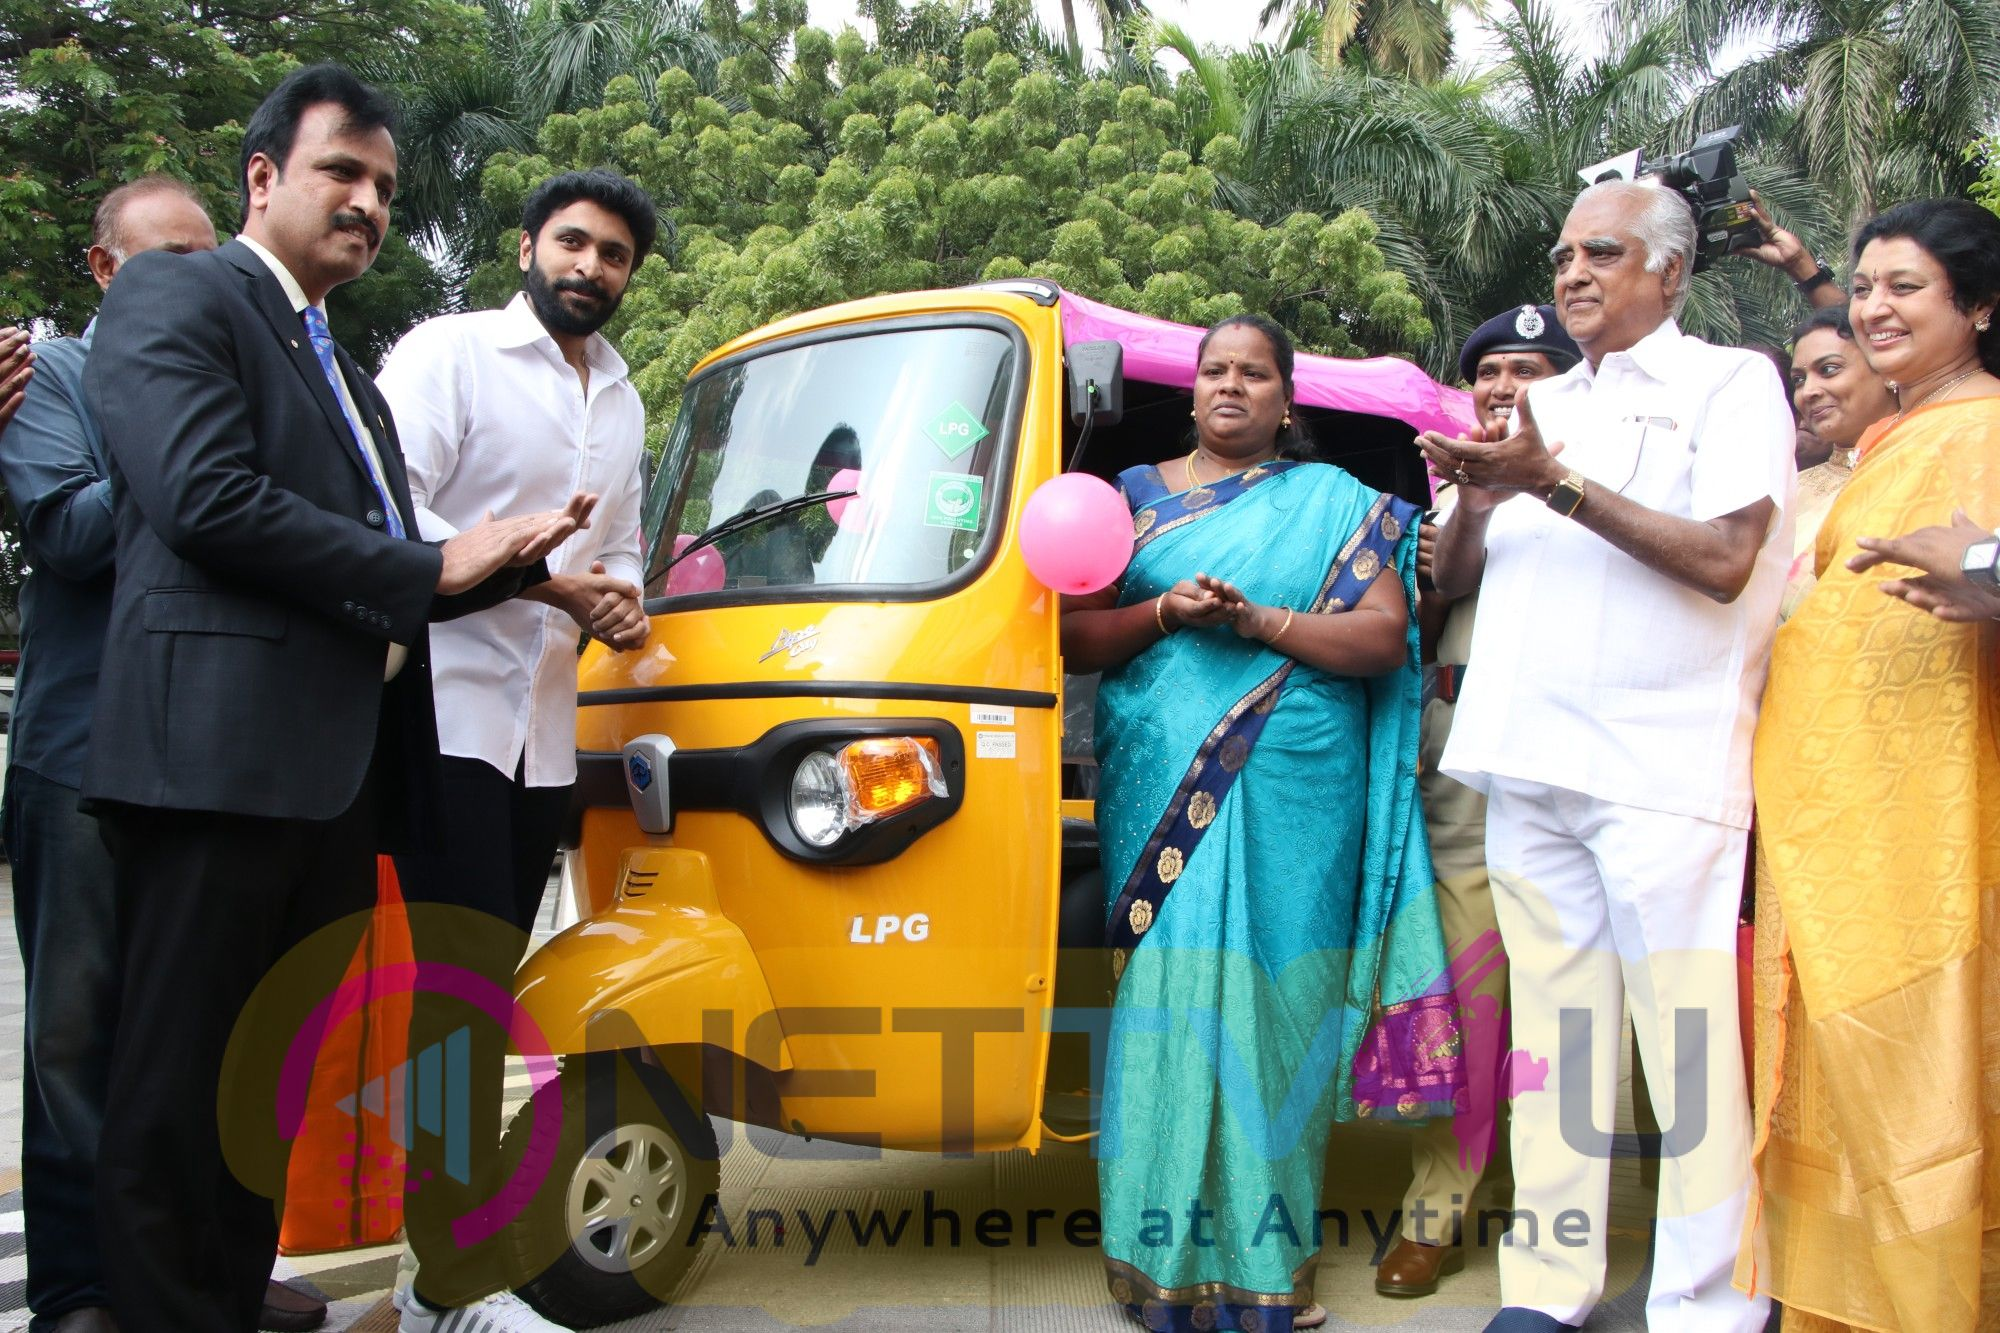 Pink Autos Are Introduced By The Rotary Club International For The Women Stills